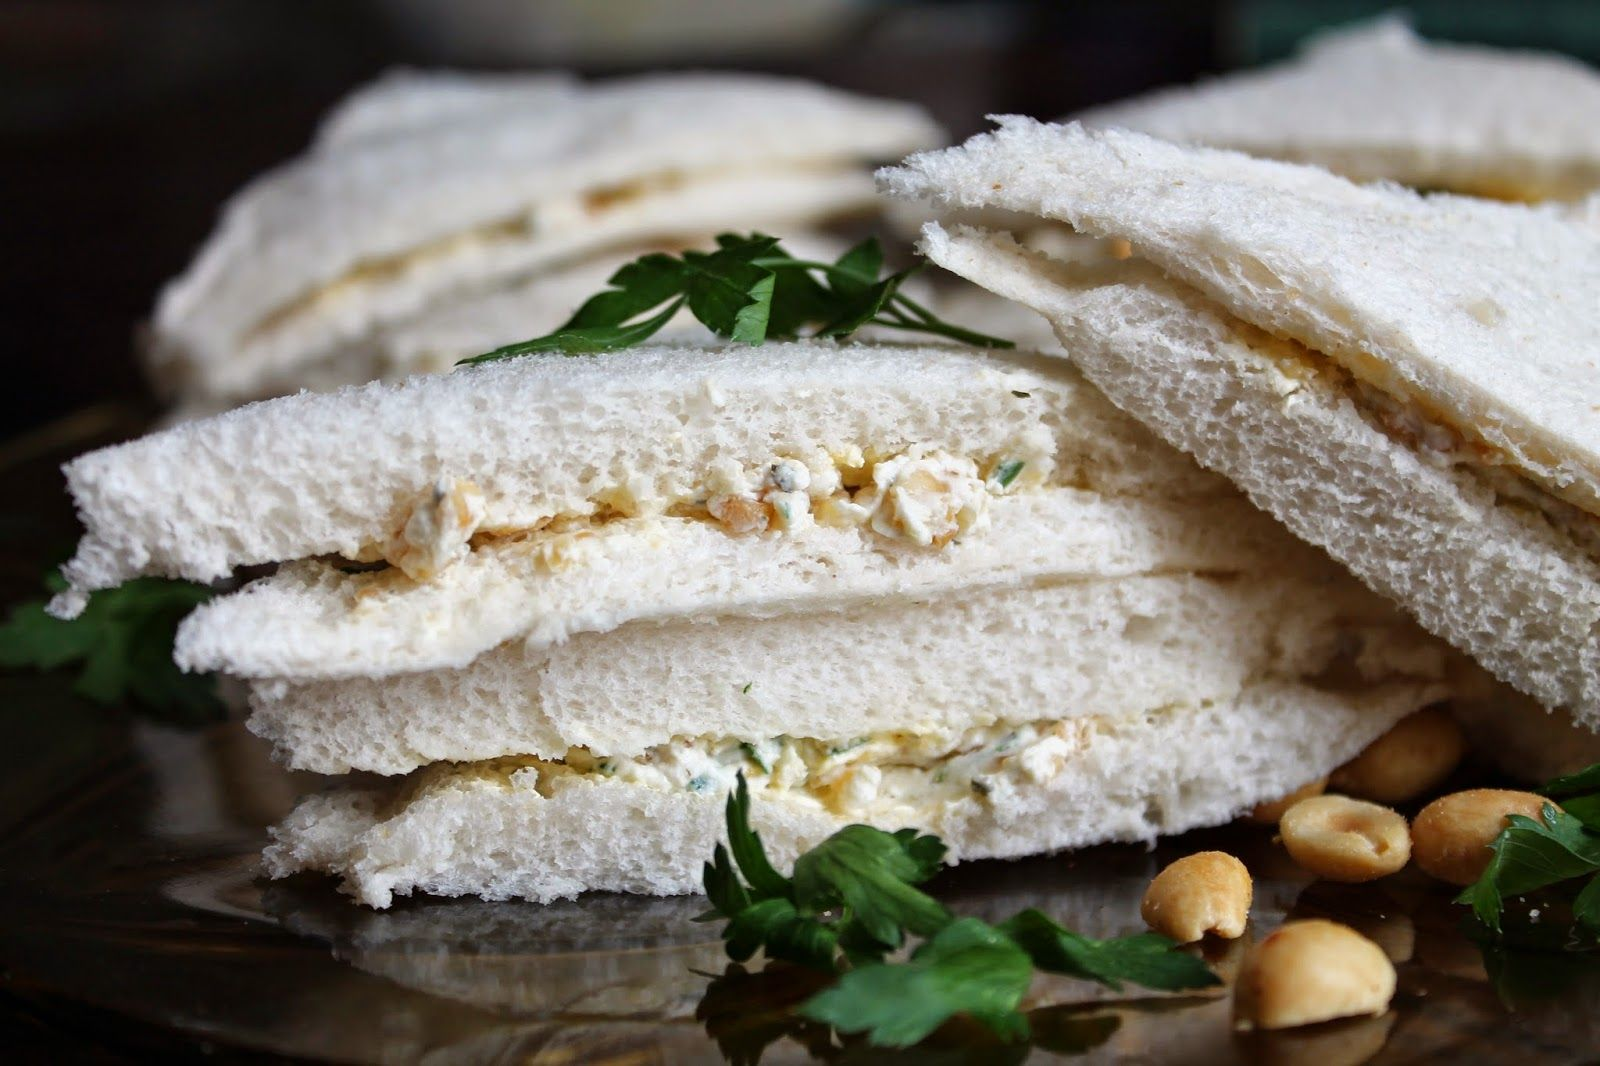 Ginger Rogers' peanut parsley sandwiches